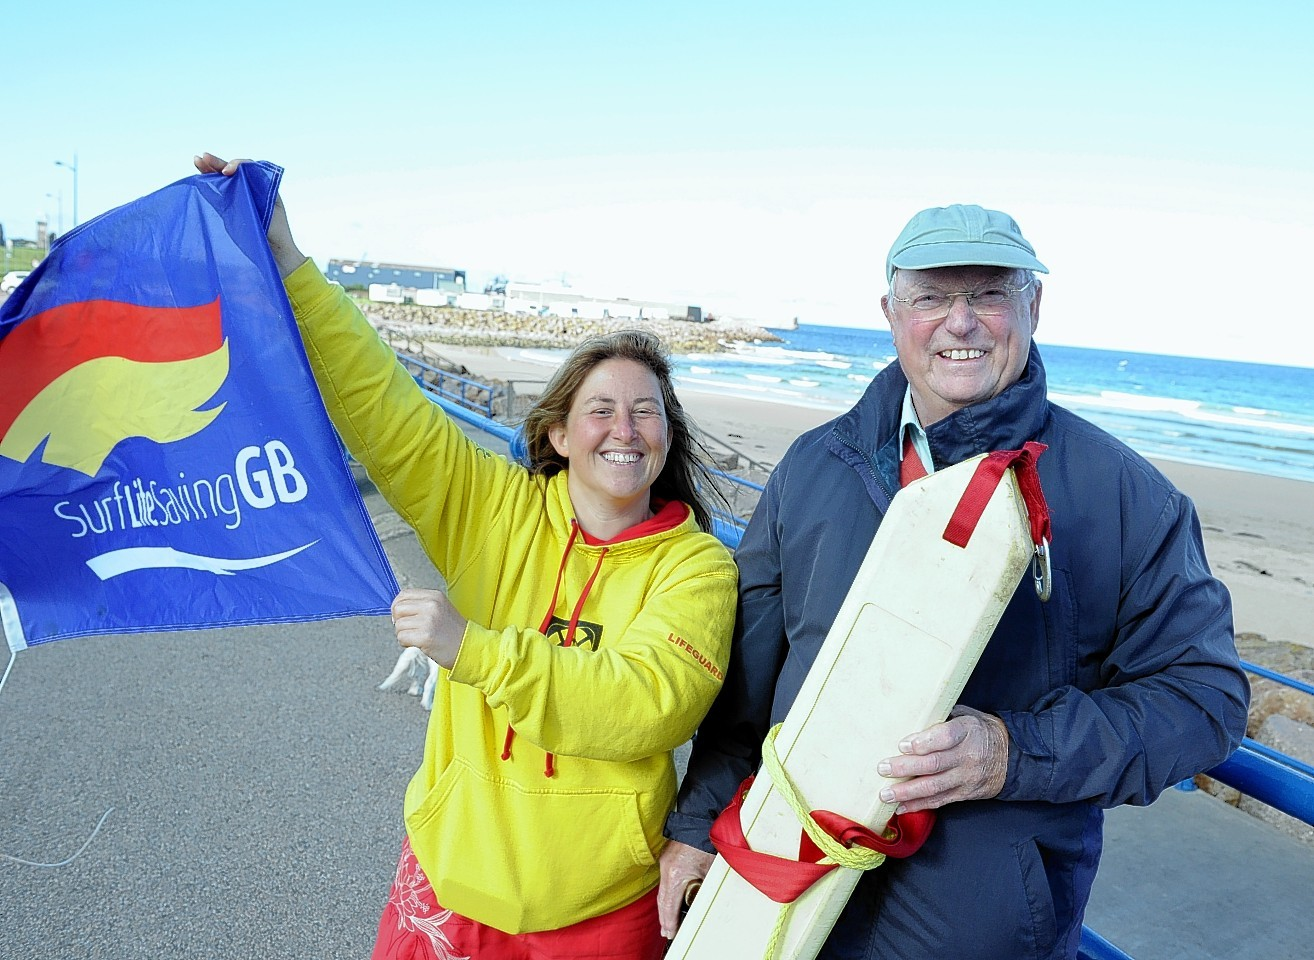 Councillor, Ian Tait and surf instuctor, Claire Levett at the Kessock  beach, Fraserburgh. Picture by Jim Irvine